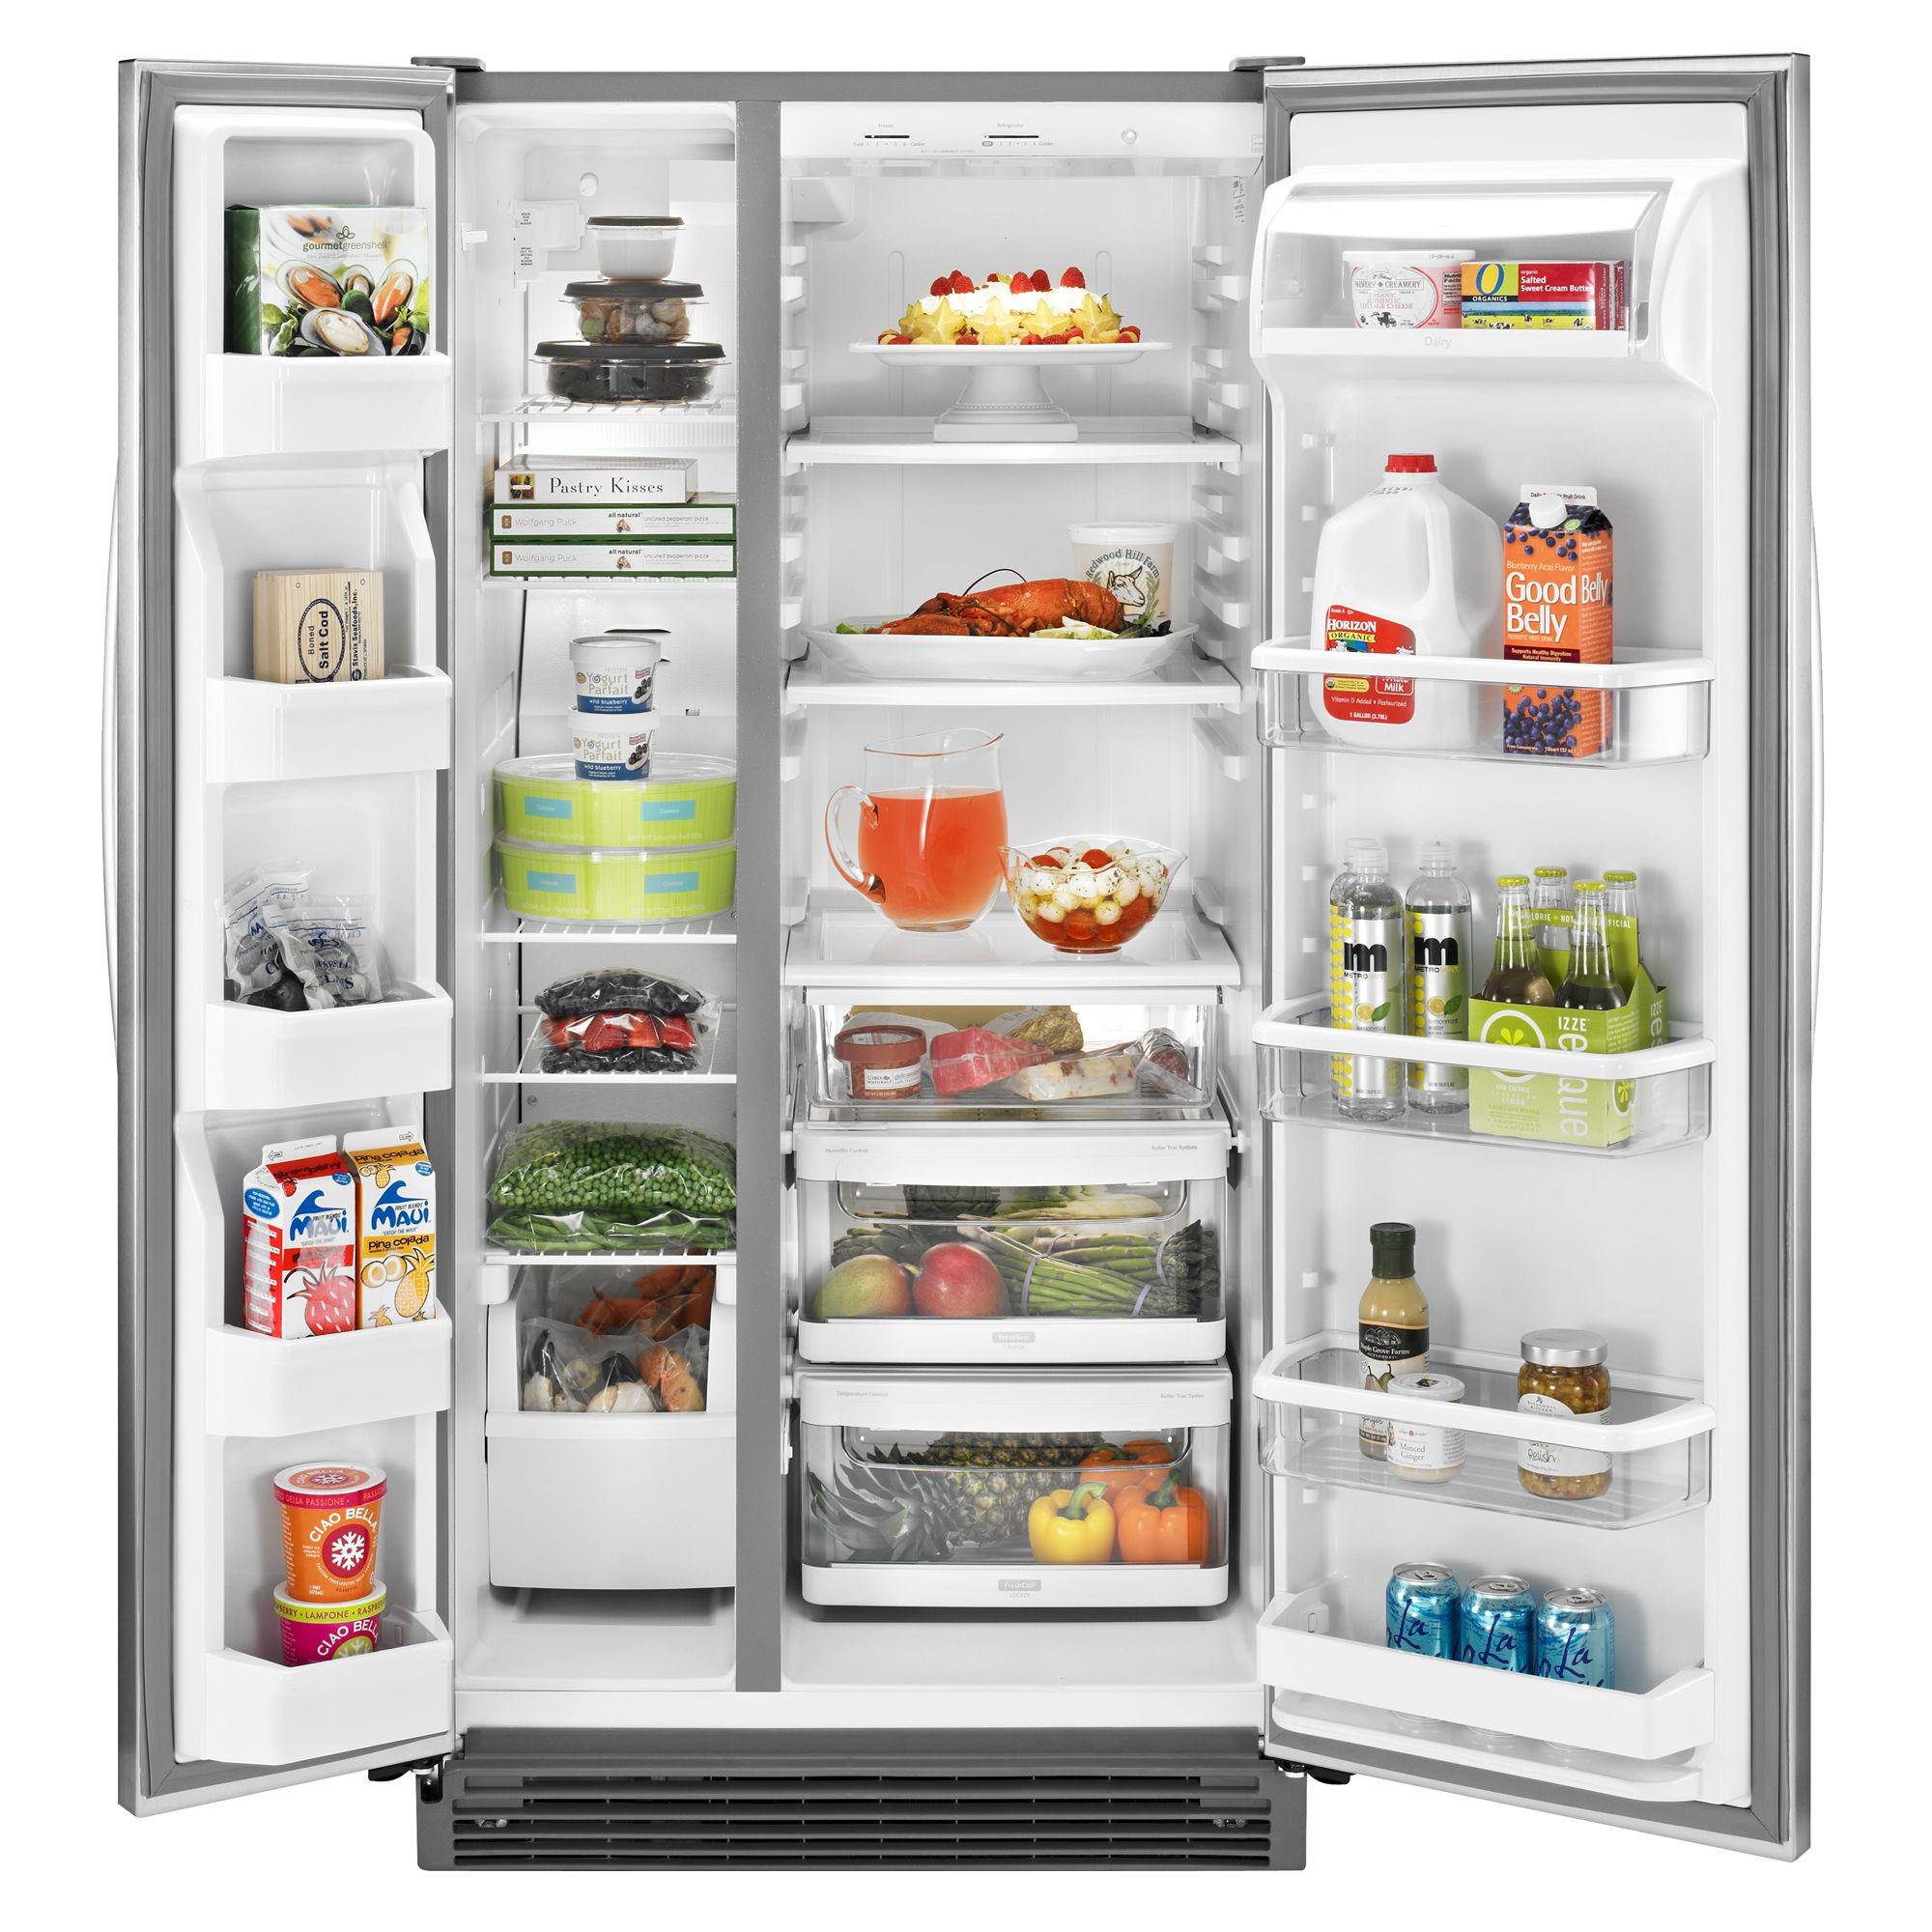 KitchenAid 21.5 cu. ft. Non-Dispensing Side-by-Side Refrigerator